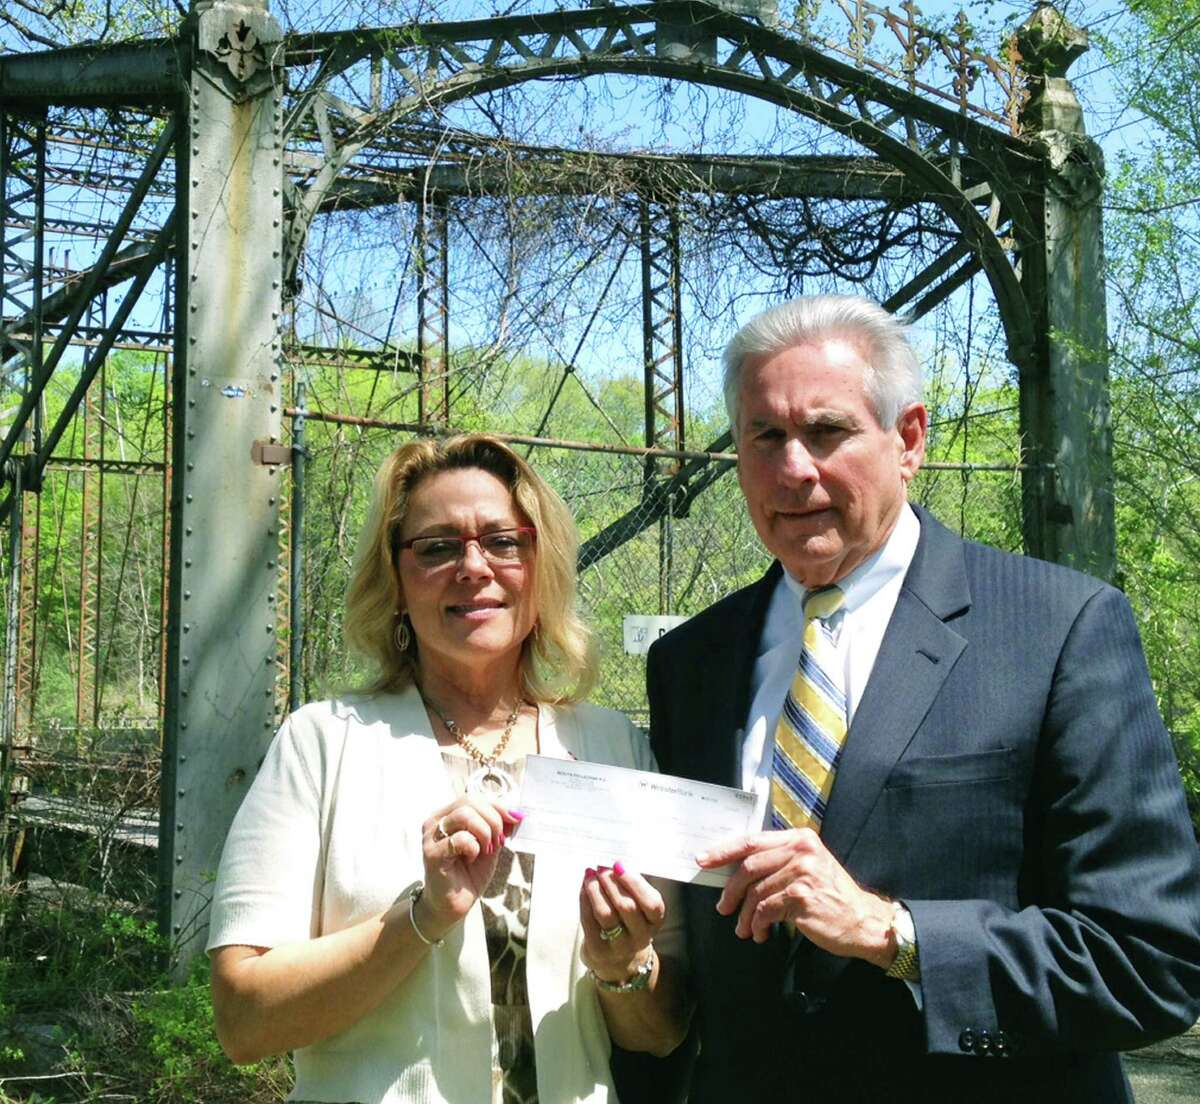 New Milford attorney Lon Moots presents a donation of $1,000 on behalf of the Moots Pellegrini law firm to Mayor Pat Murphy to help fund the restoration project of the Boardman Bridge. May 2015